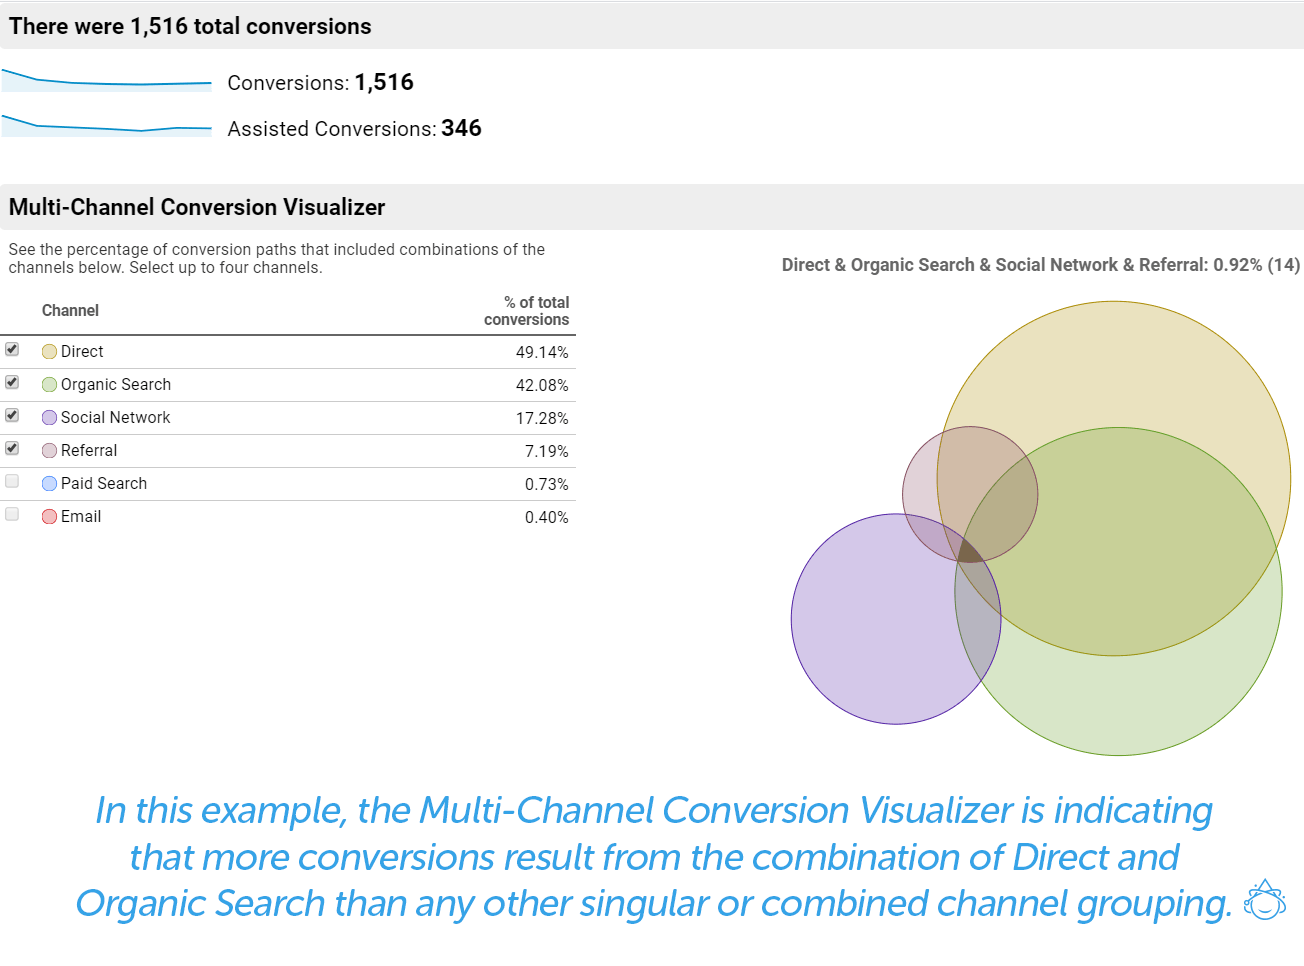 In this example, the Multi-Channel Conversion Visualizer in indicating that more conversions result from the combination of Direct and Organic Search than any other singular or combined channel grouping.